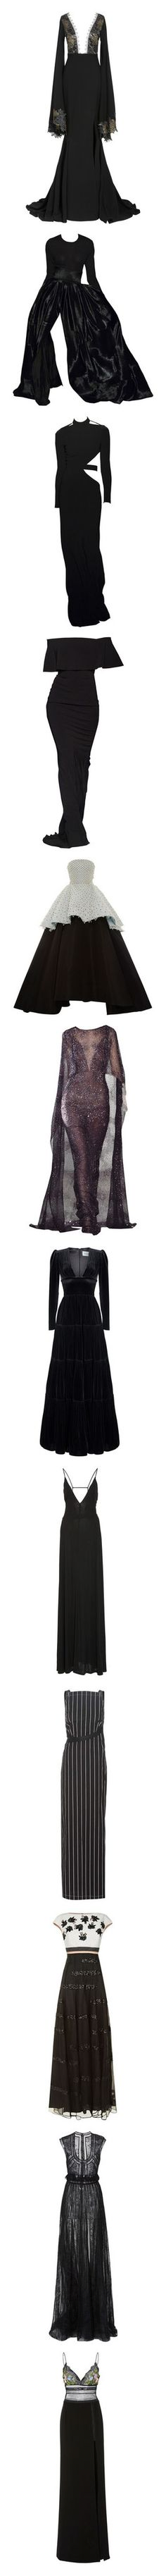 """""""dresses three"""" by gmbtch ❤ liked on Polyvore featuring dresses, gowns, black, long sleeve dress, lace dress, lace evening gowns, long sleeve evening gowns, long-sleeve lace dresses, couture and couture evening gowns"""